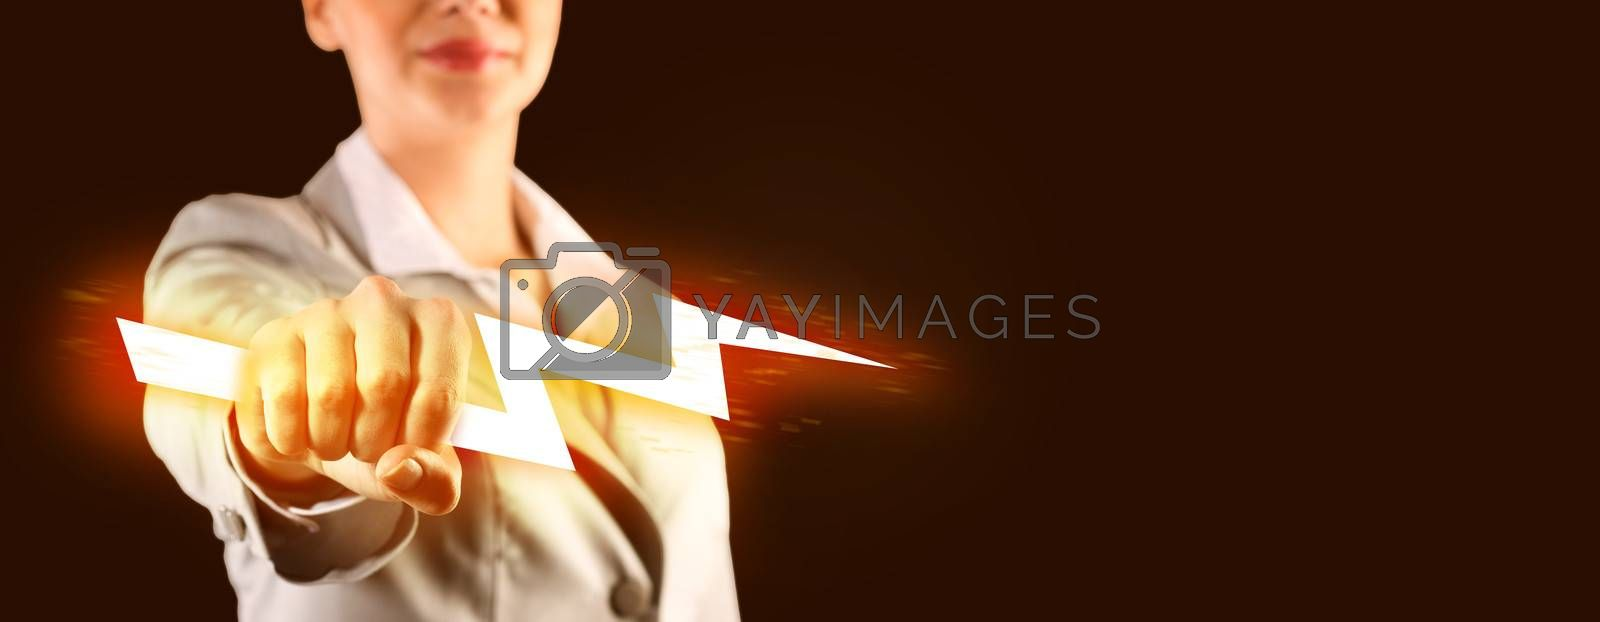 close-up of clasped hand with lights by adam121